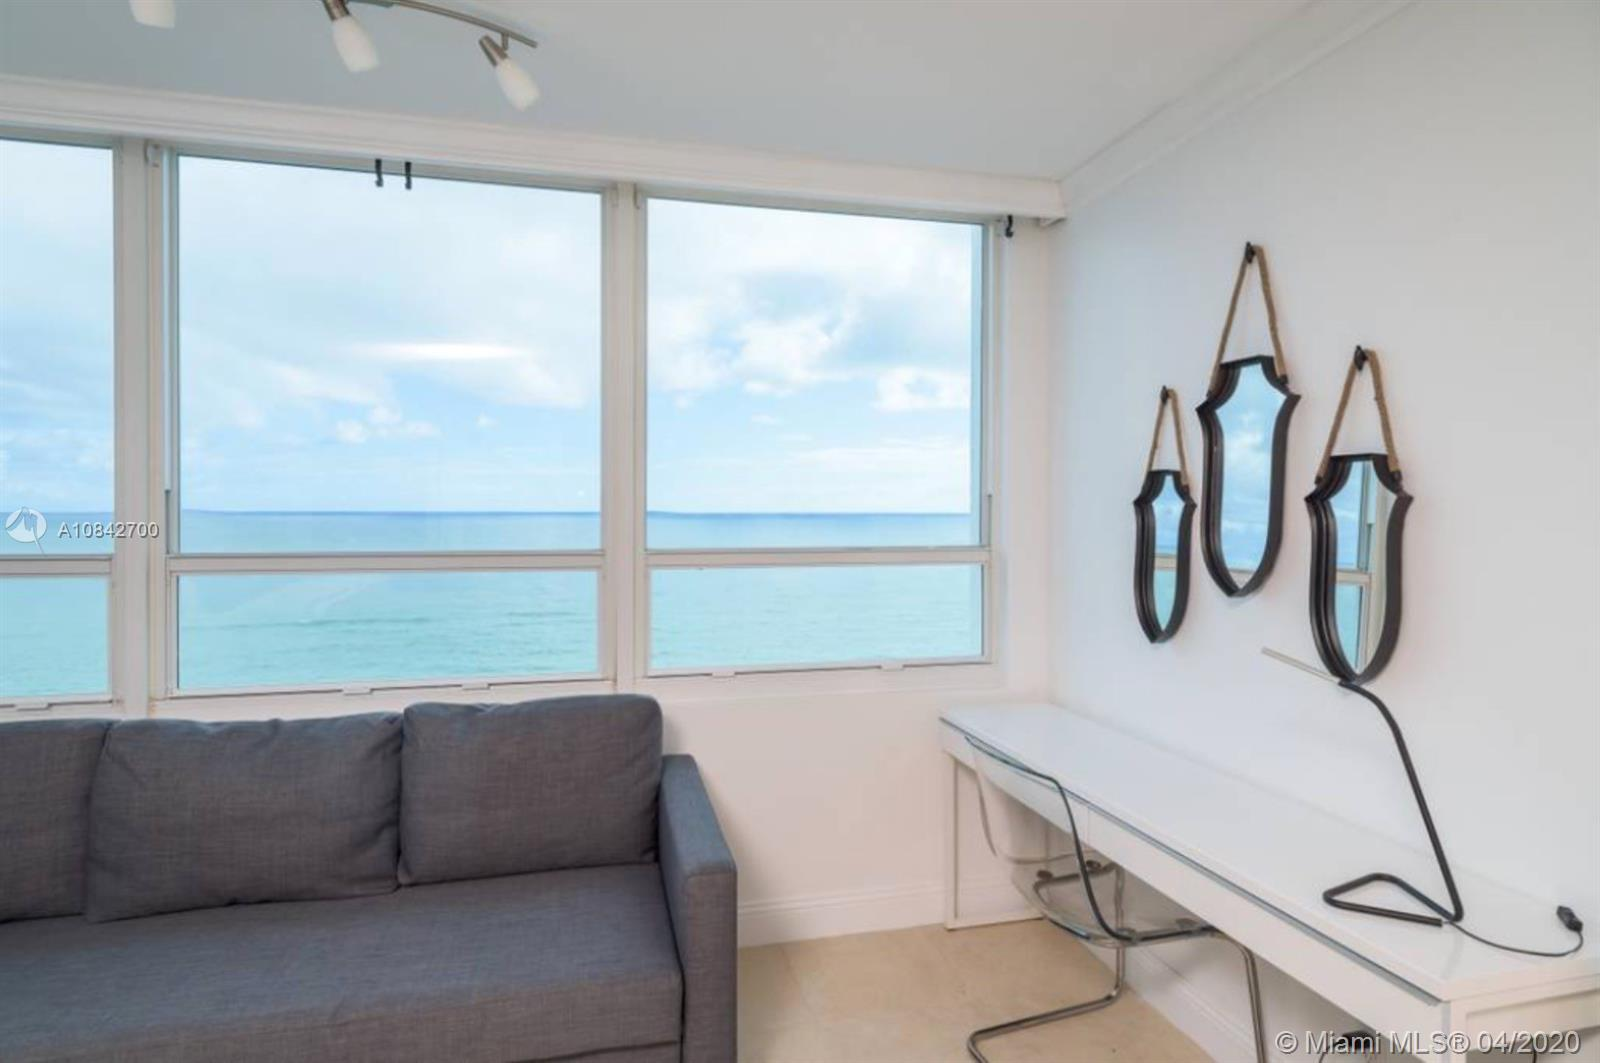 5445 Collins Ave # 601, Miami Beach, Florida 33140, ,1 BathroomBathrooms,Residential Lease,For Rent,5445 Collins Ave # 601,A10842700